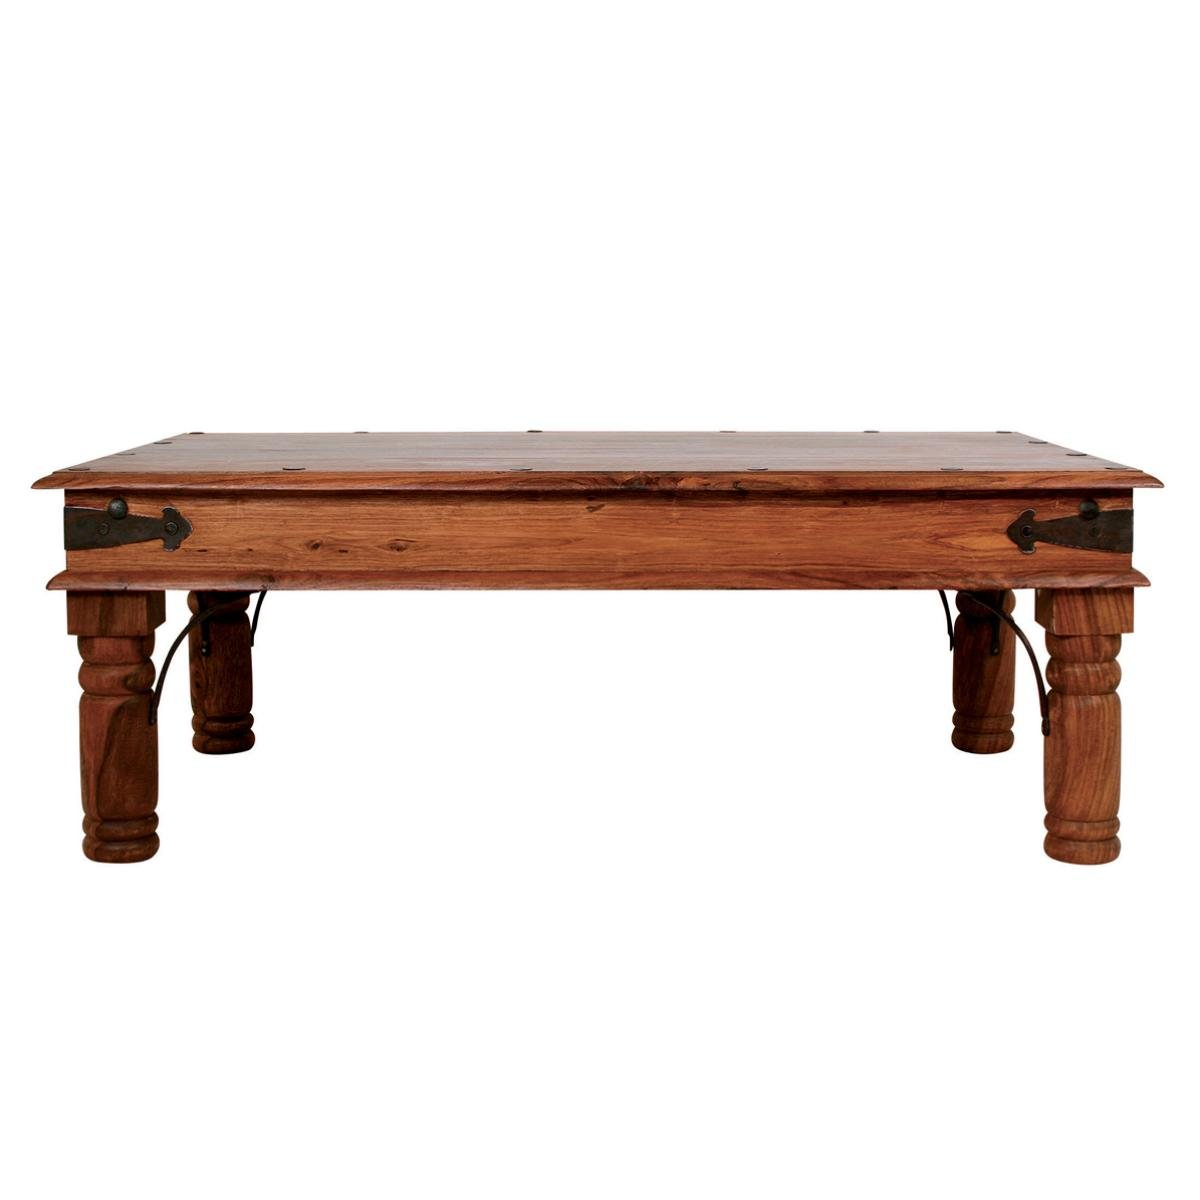 Thakat Large Coffee Table       reviews and more information